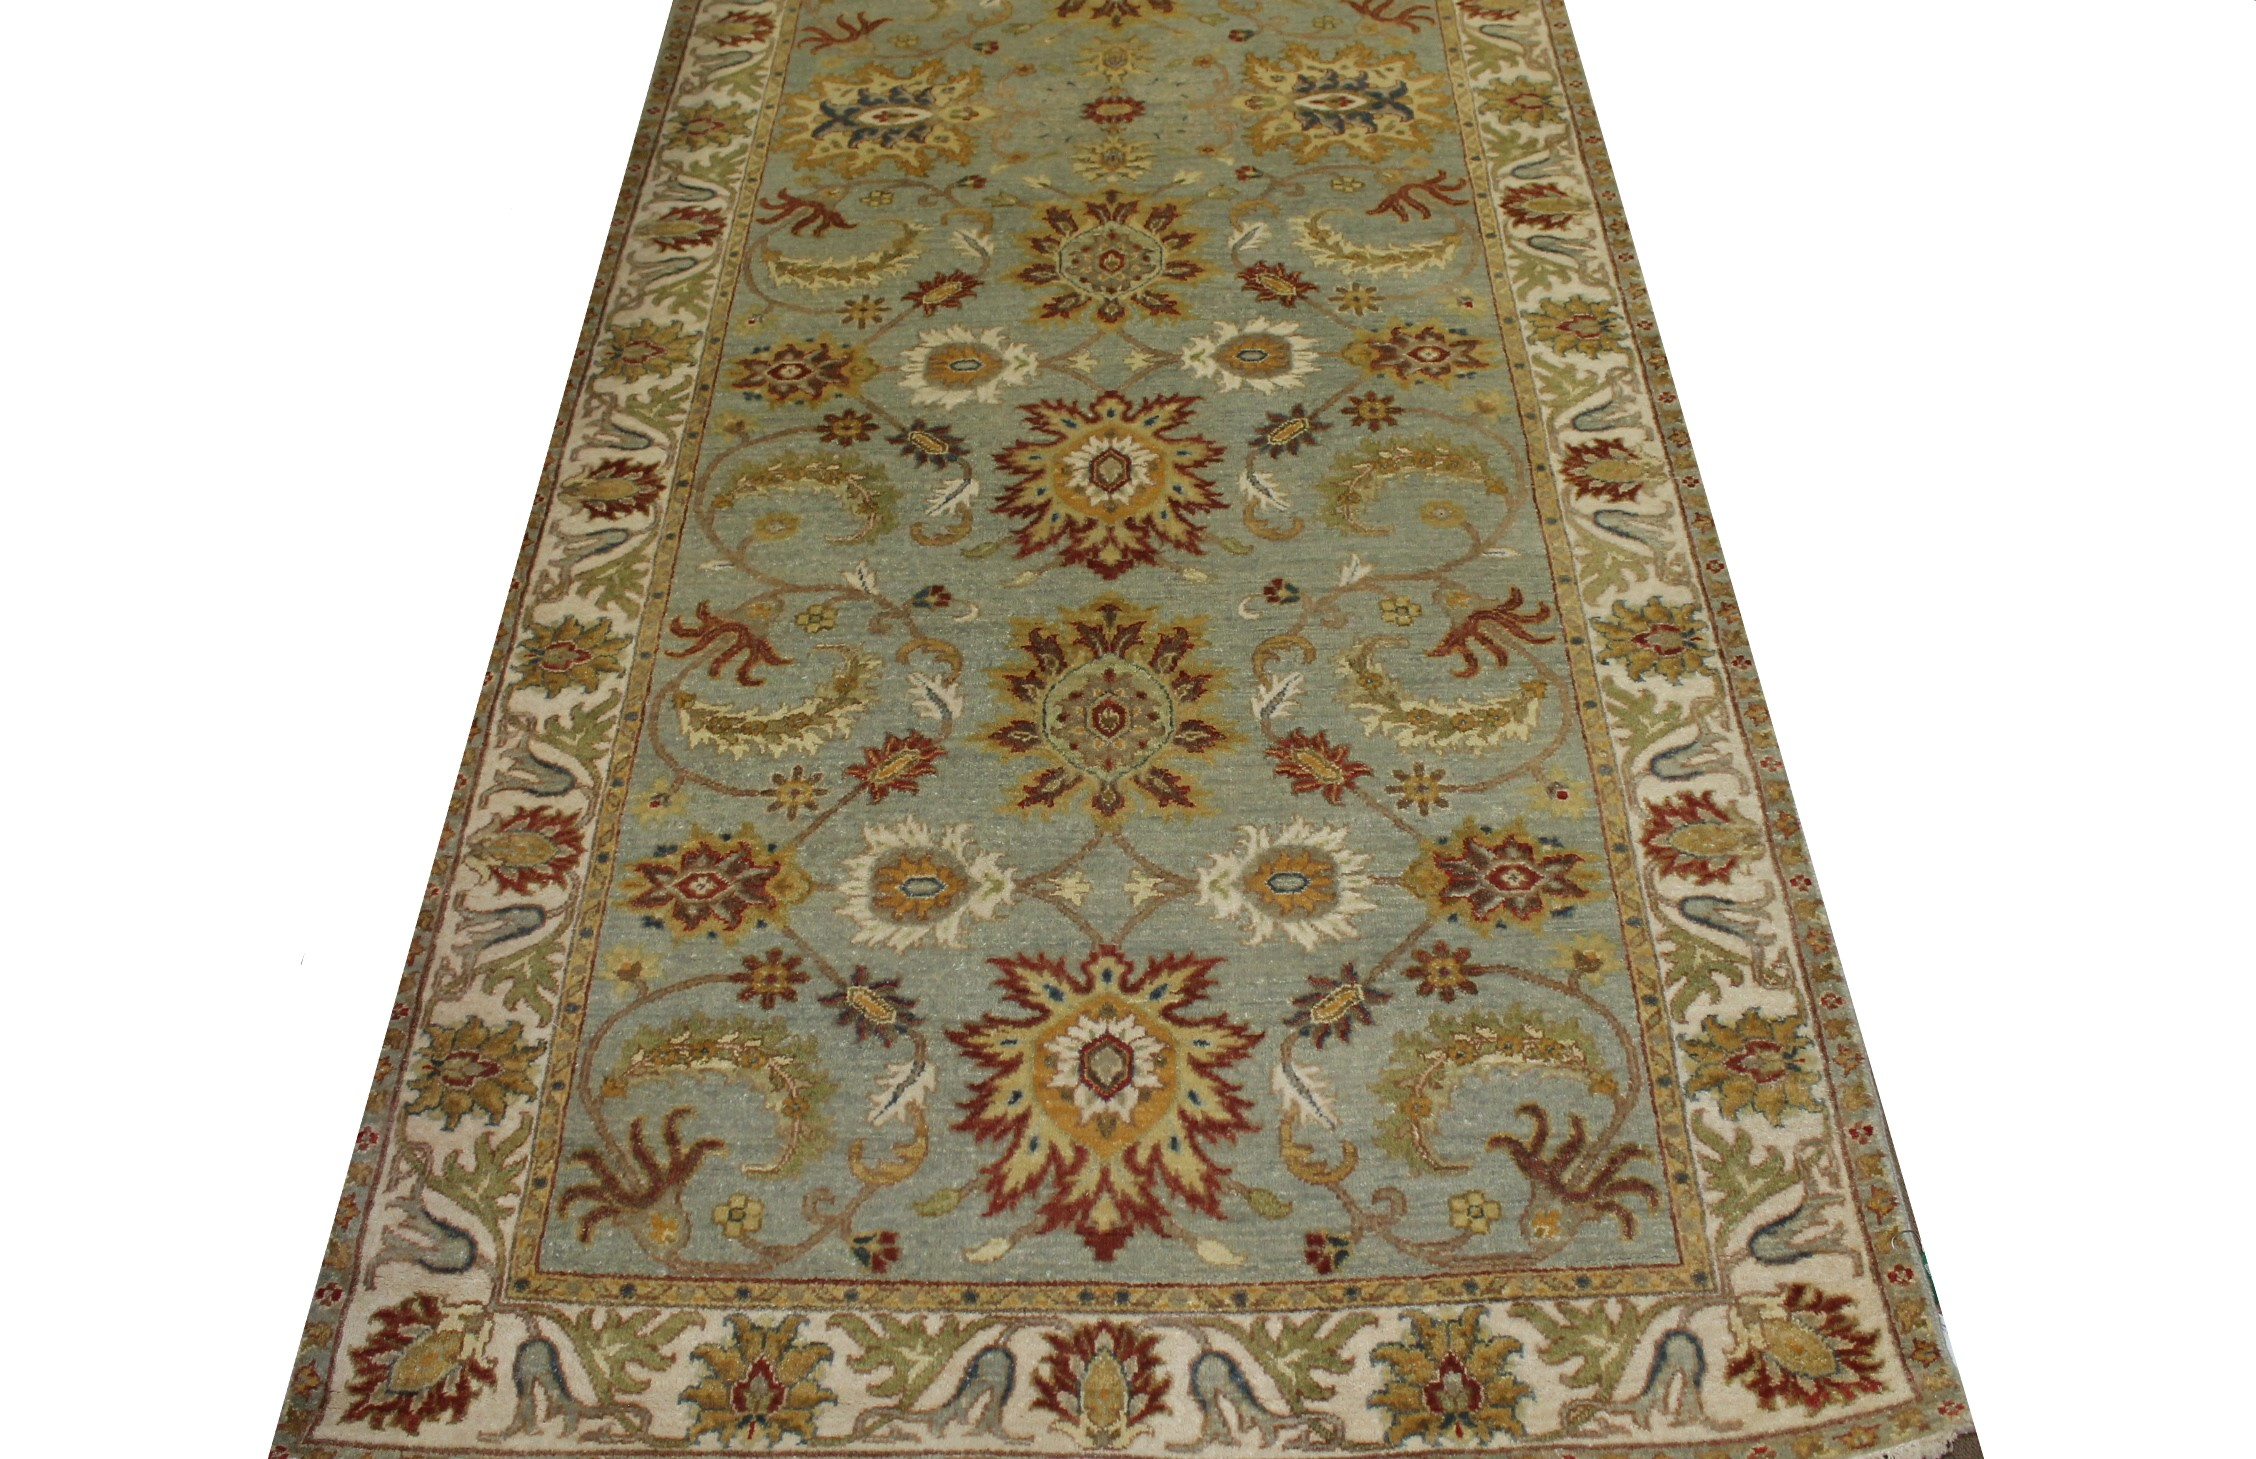 Wide Runner Traditional Hand Knotted Wool Area Rug - MR022867